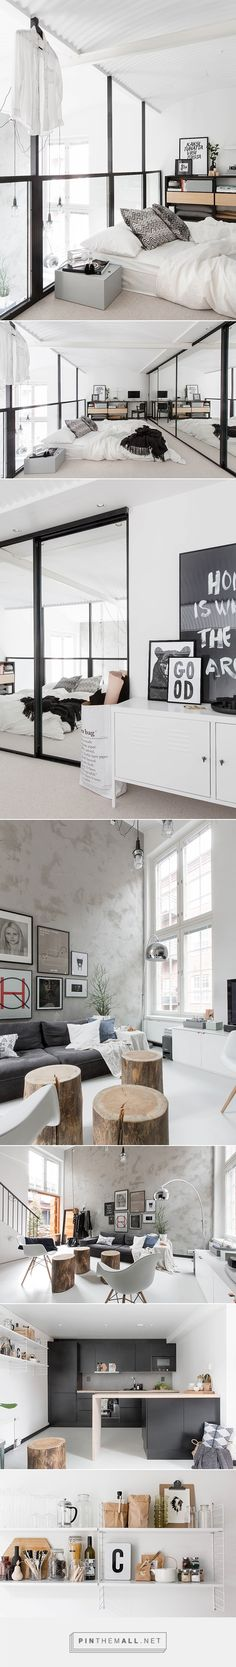 Cool scandinavian loft | My Paradissi... - a grouped images picture - Pin Them All